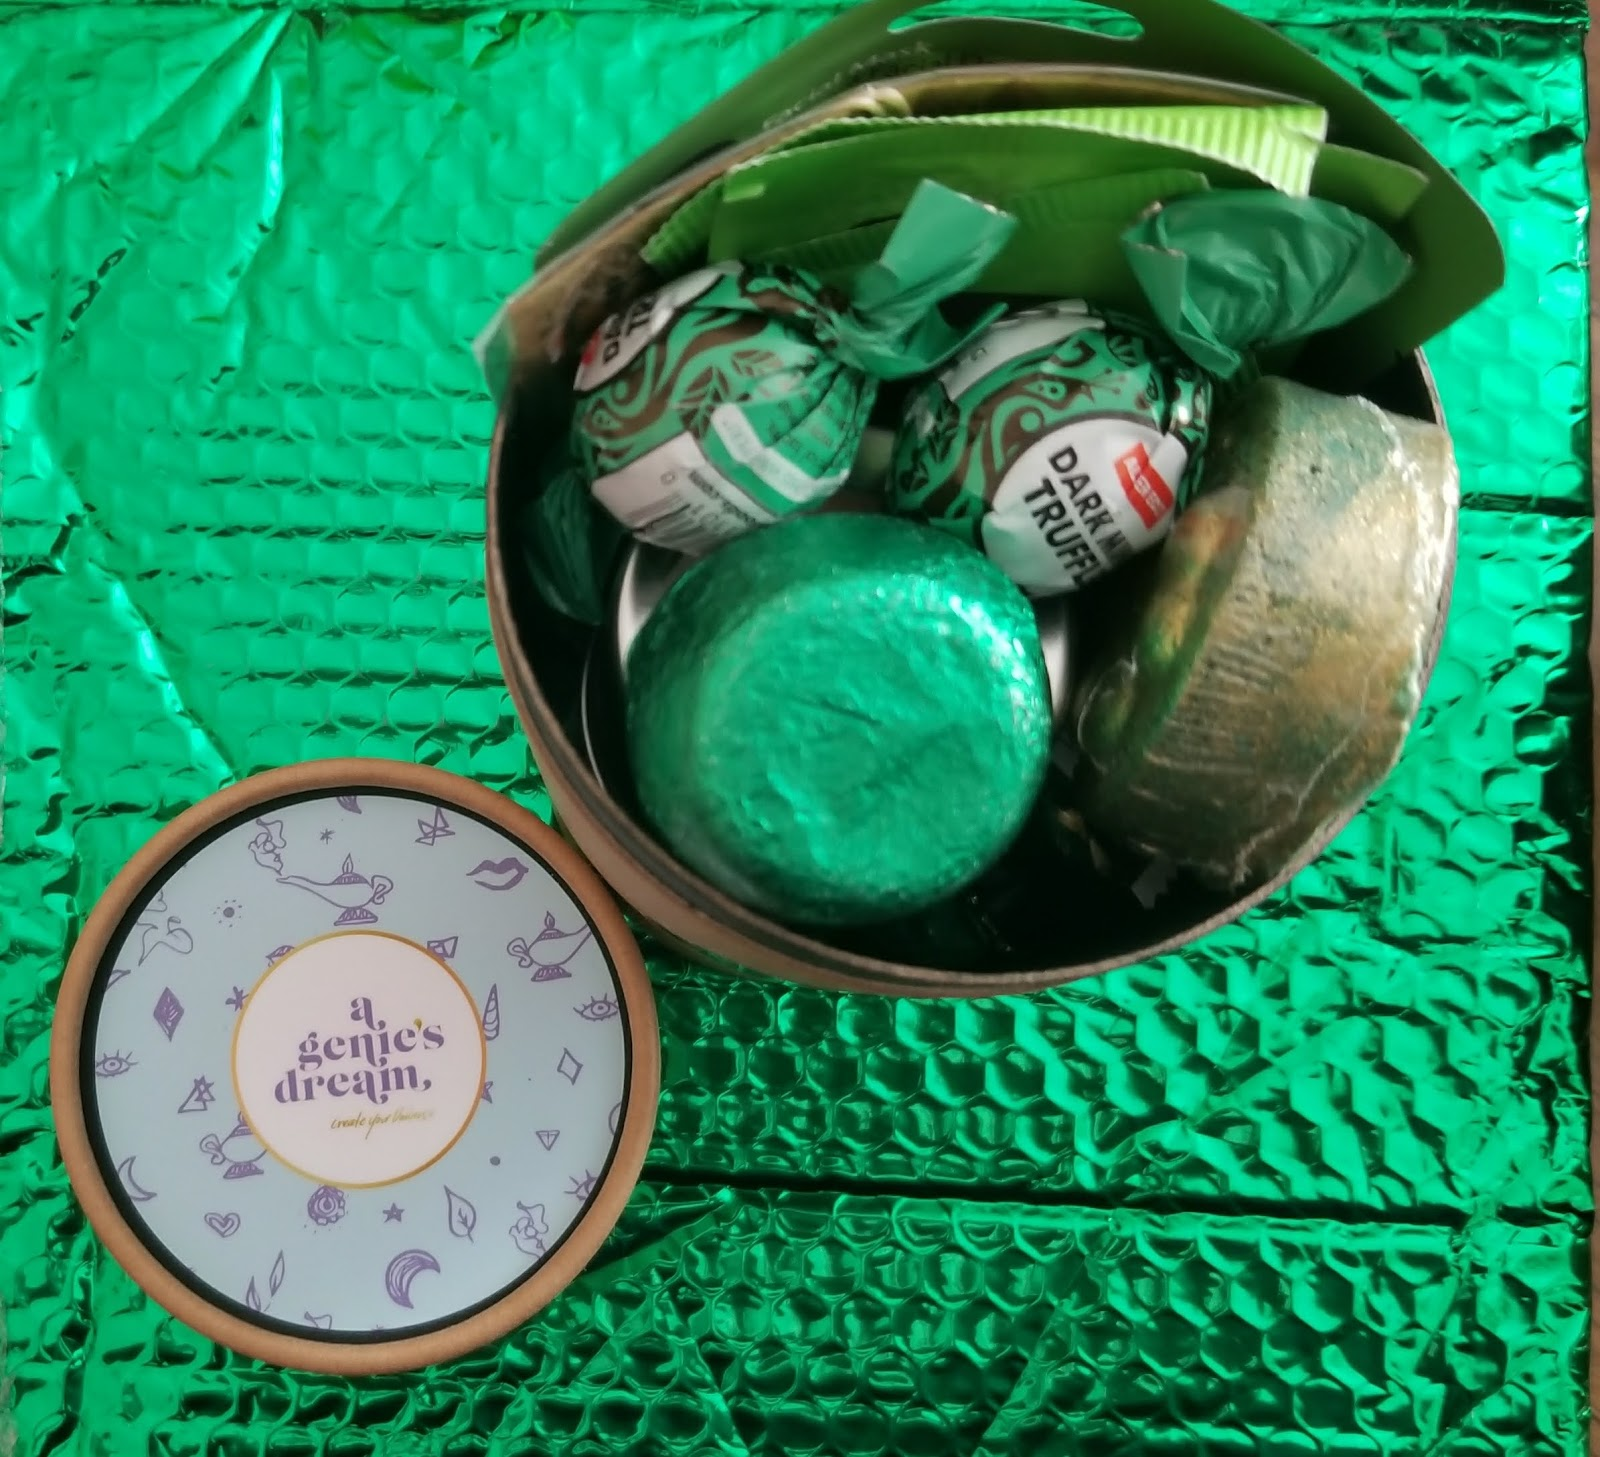 This Is For The Raw Tube Which Is A Mix Of Organic Items Like Pads Tampons Crystals Name Brand Makeup And Other Treats